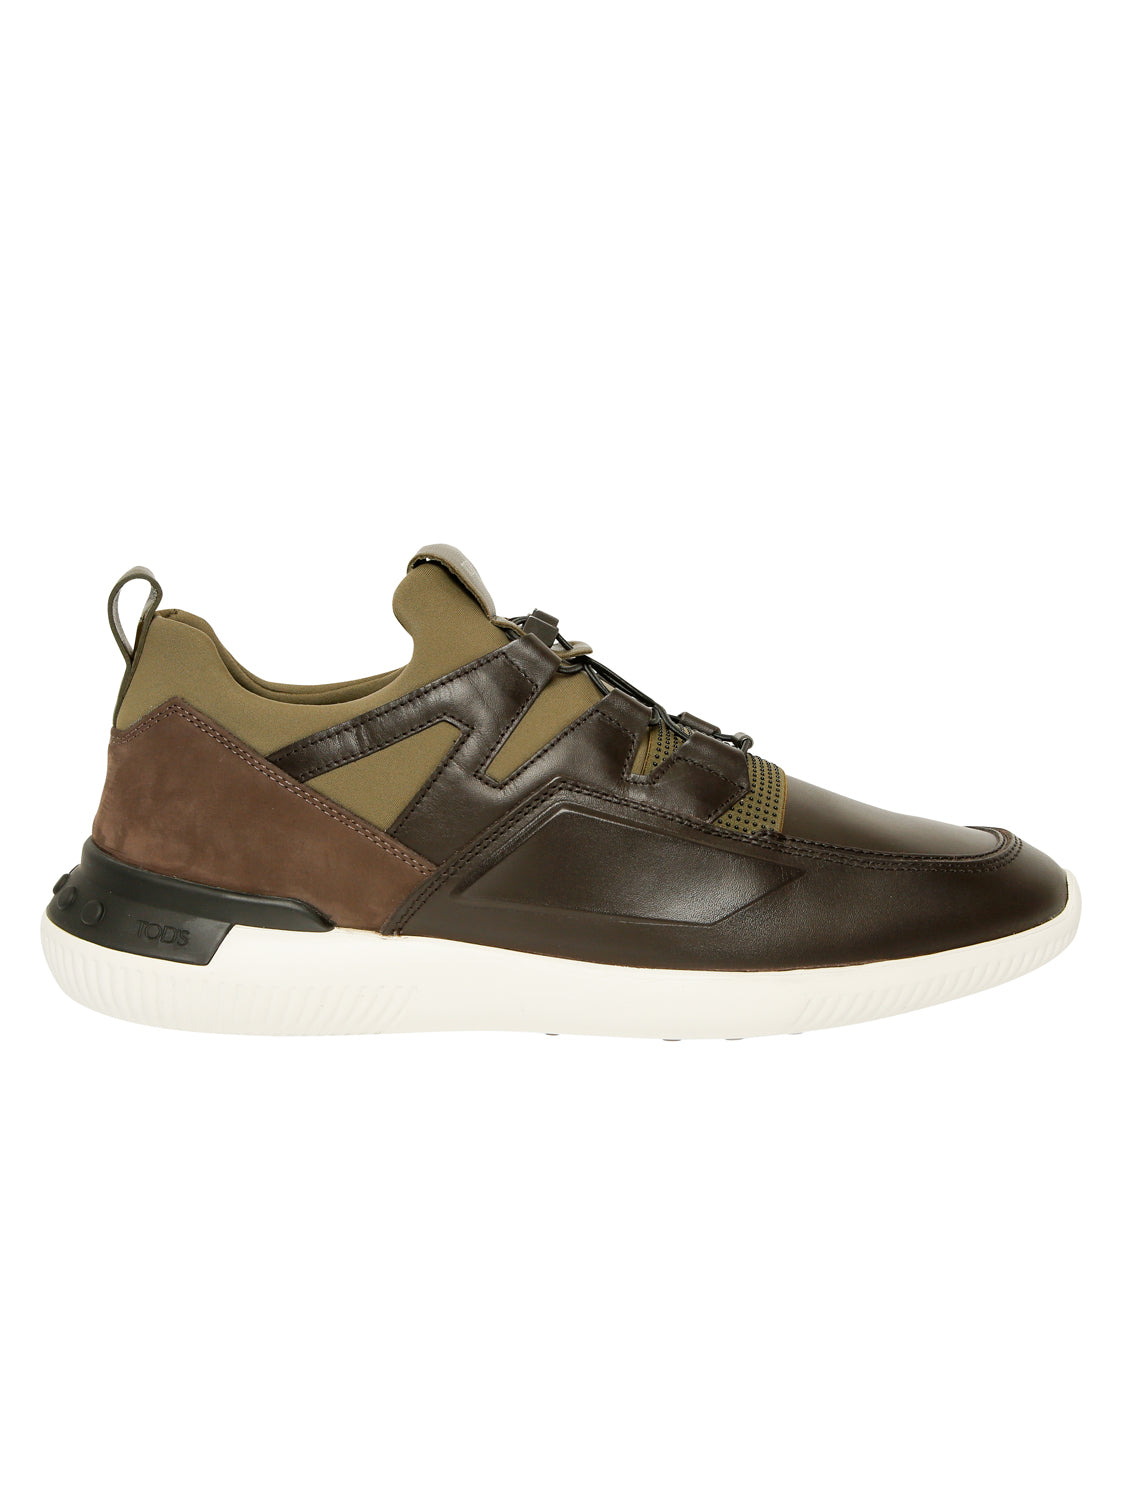 TOD'S No Code Shoeker (Khaki) - Union 22